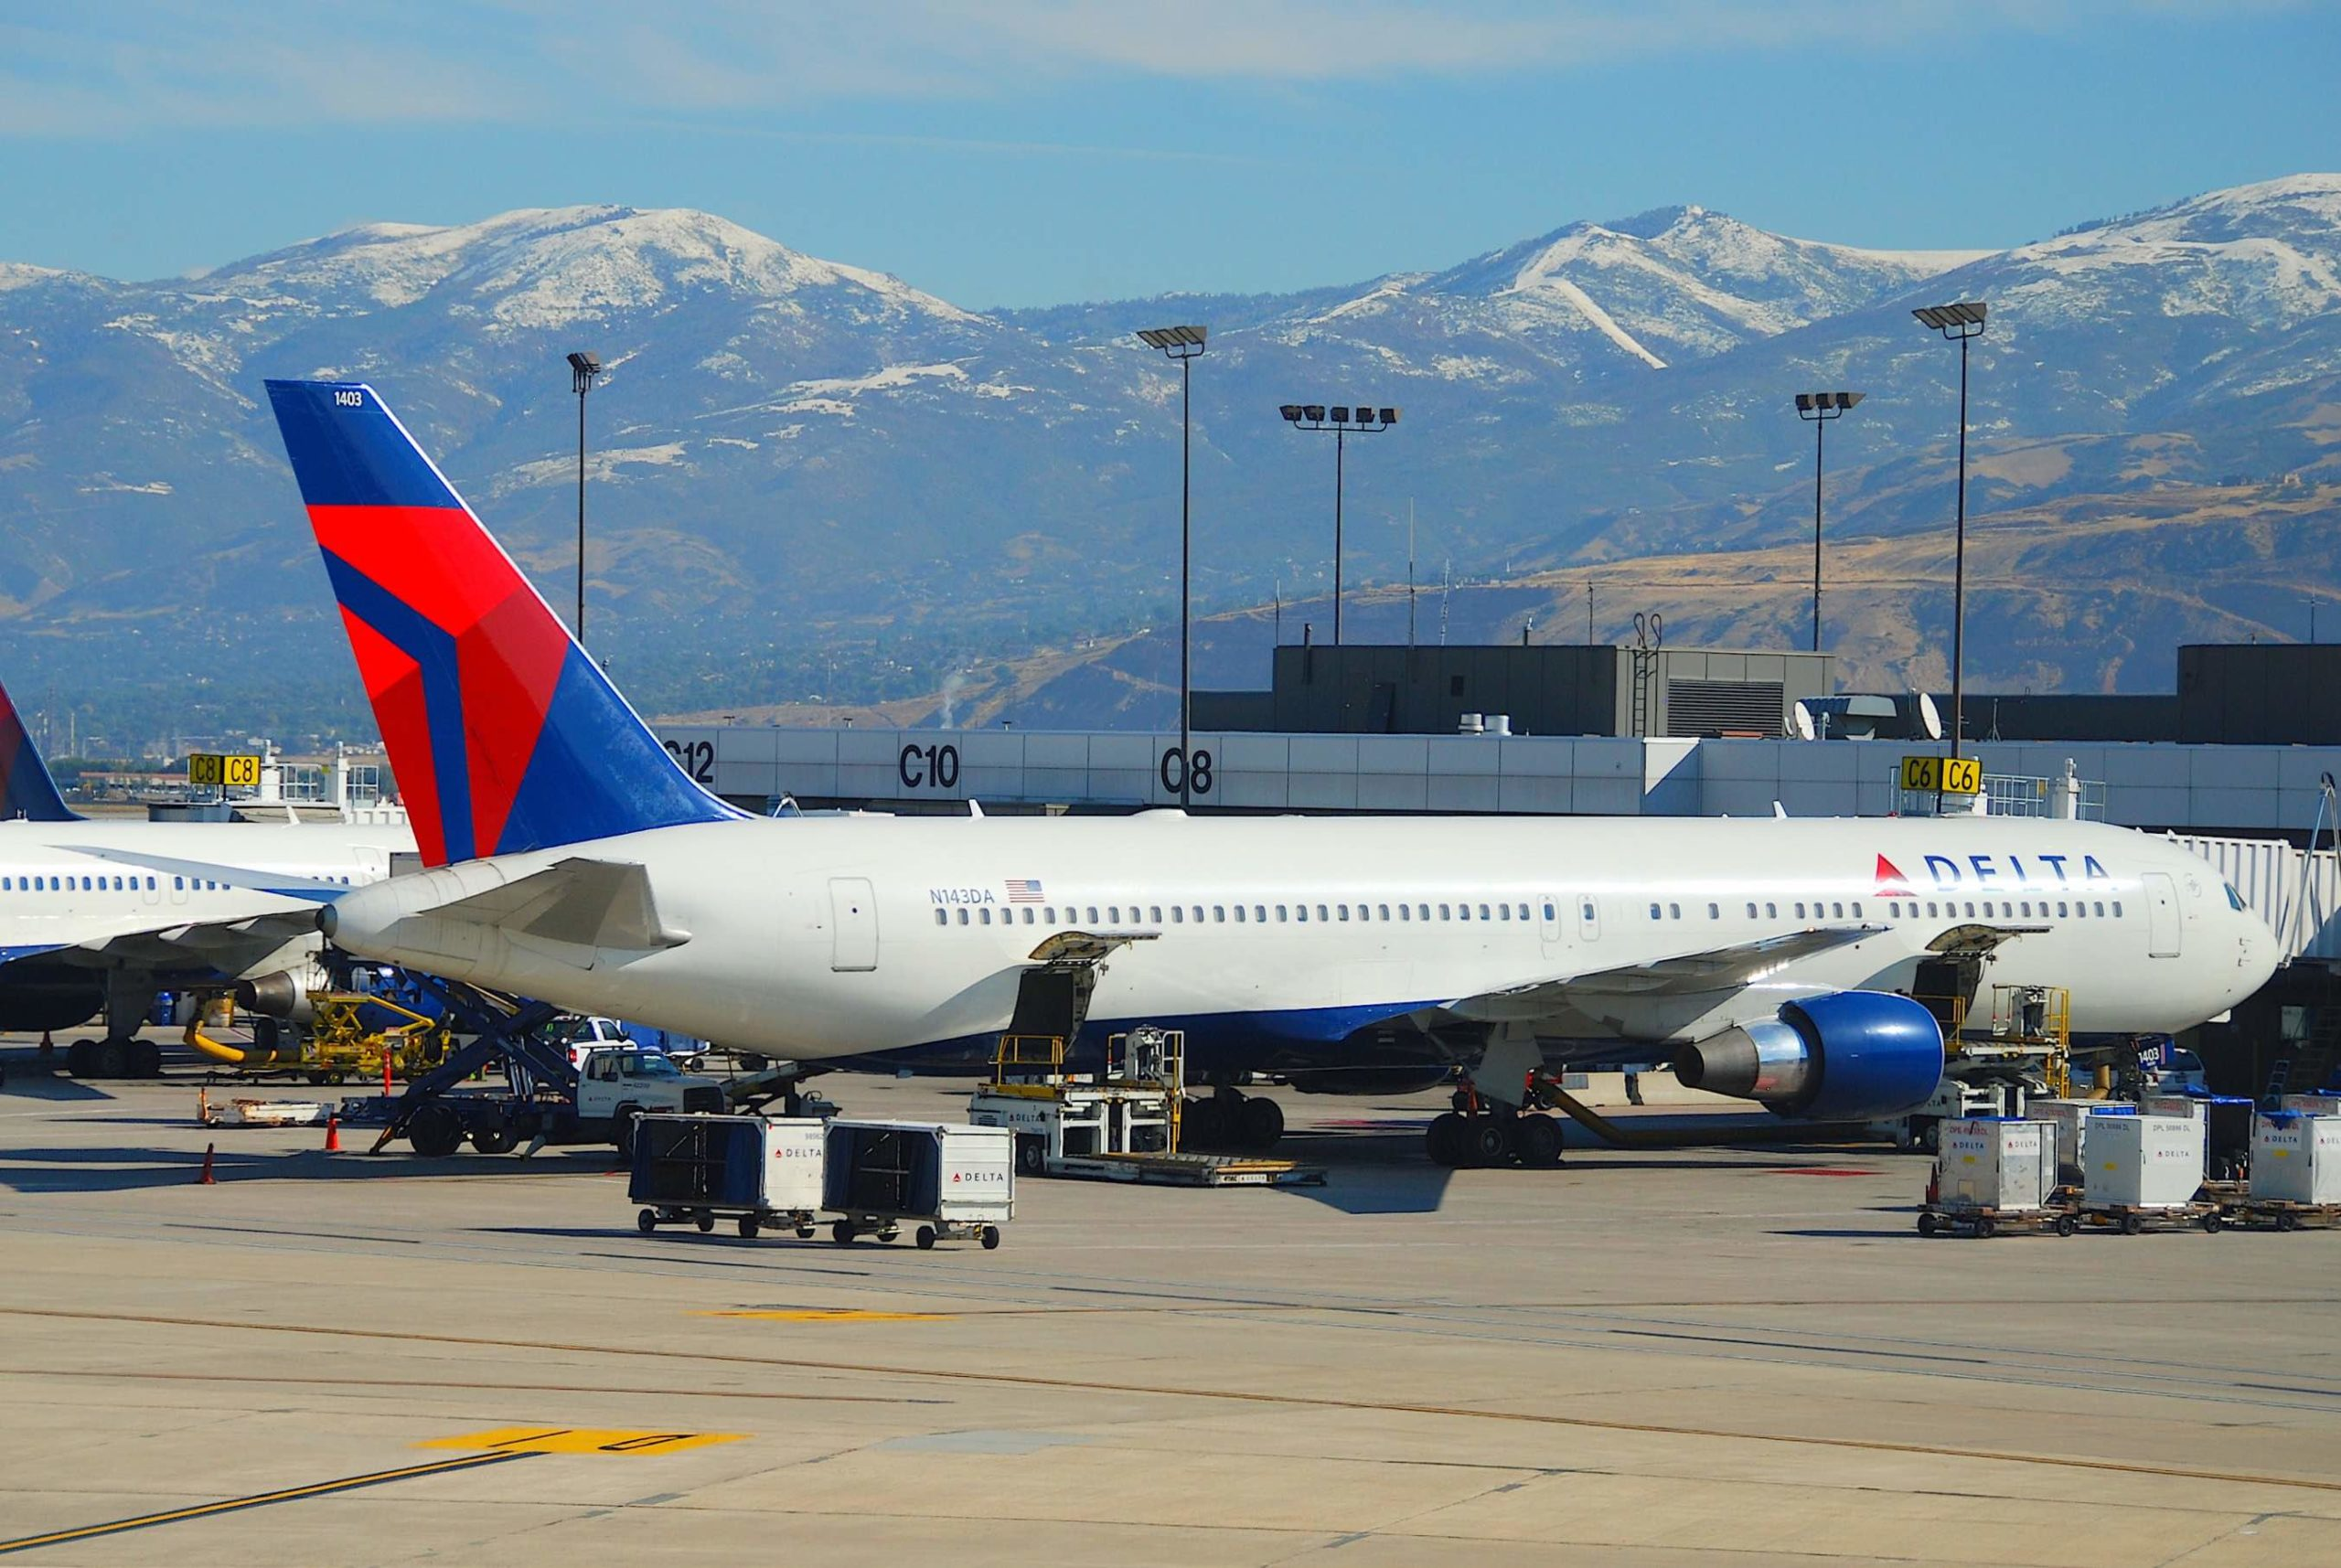 Delta launches service at new Salt Lake City airport